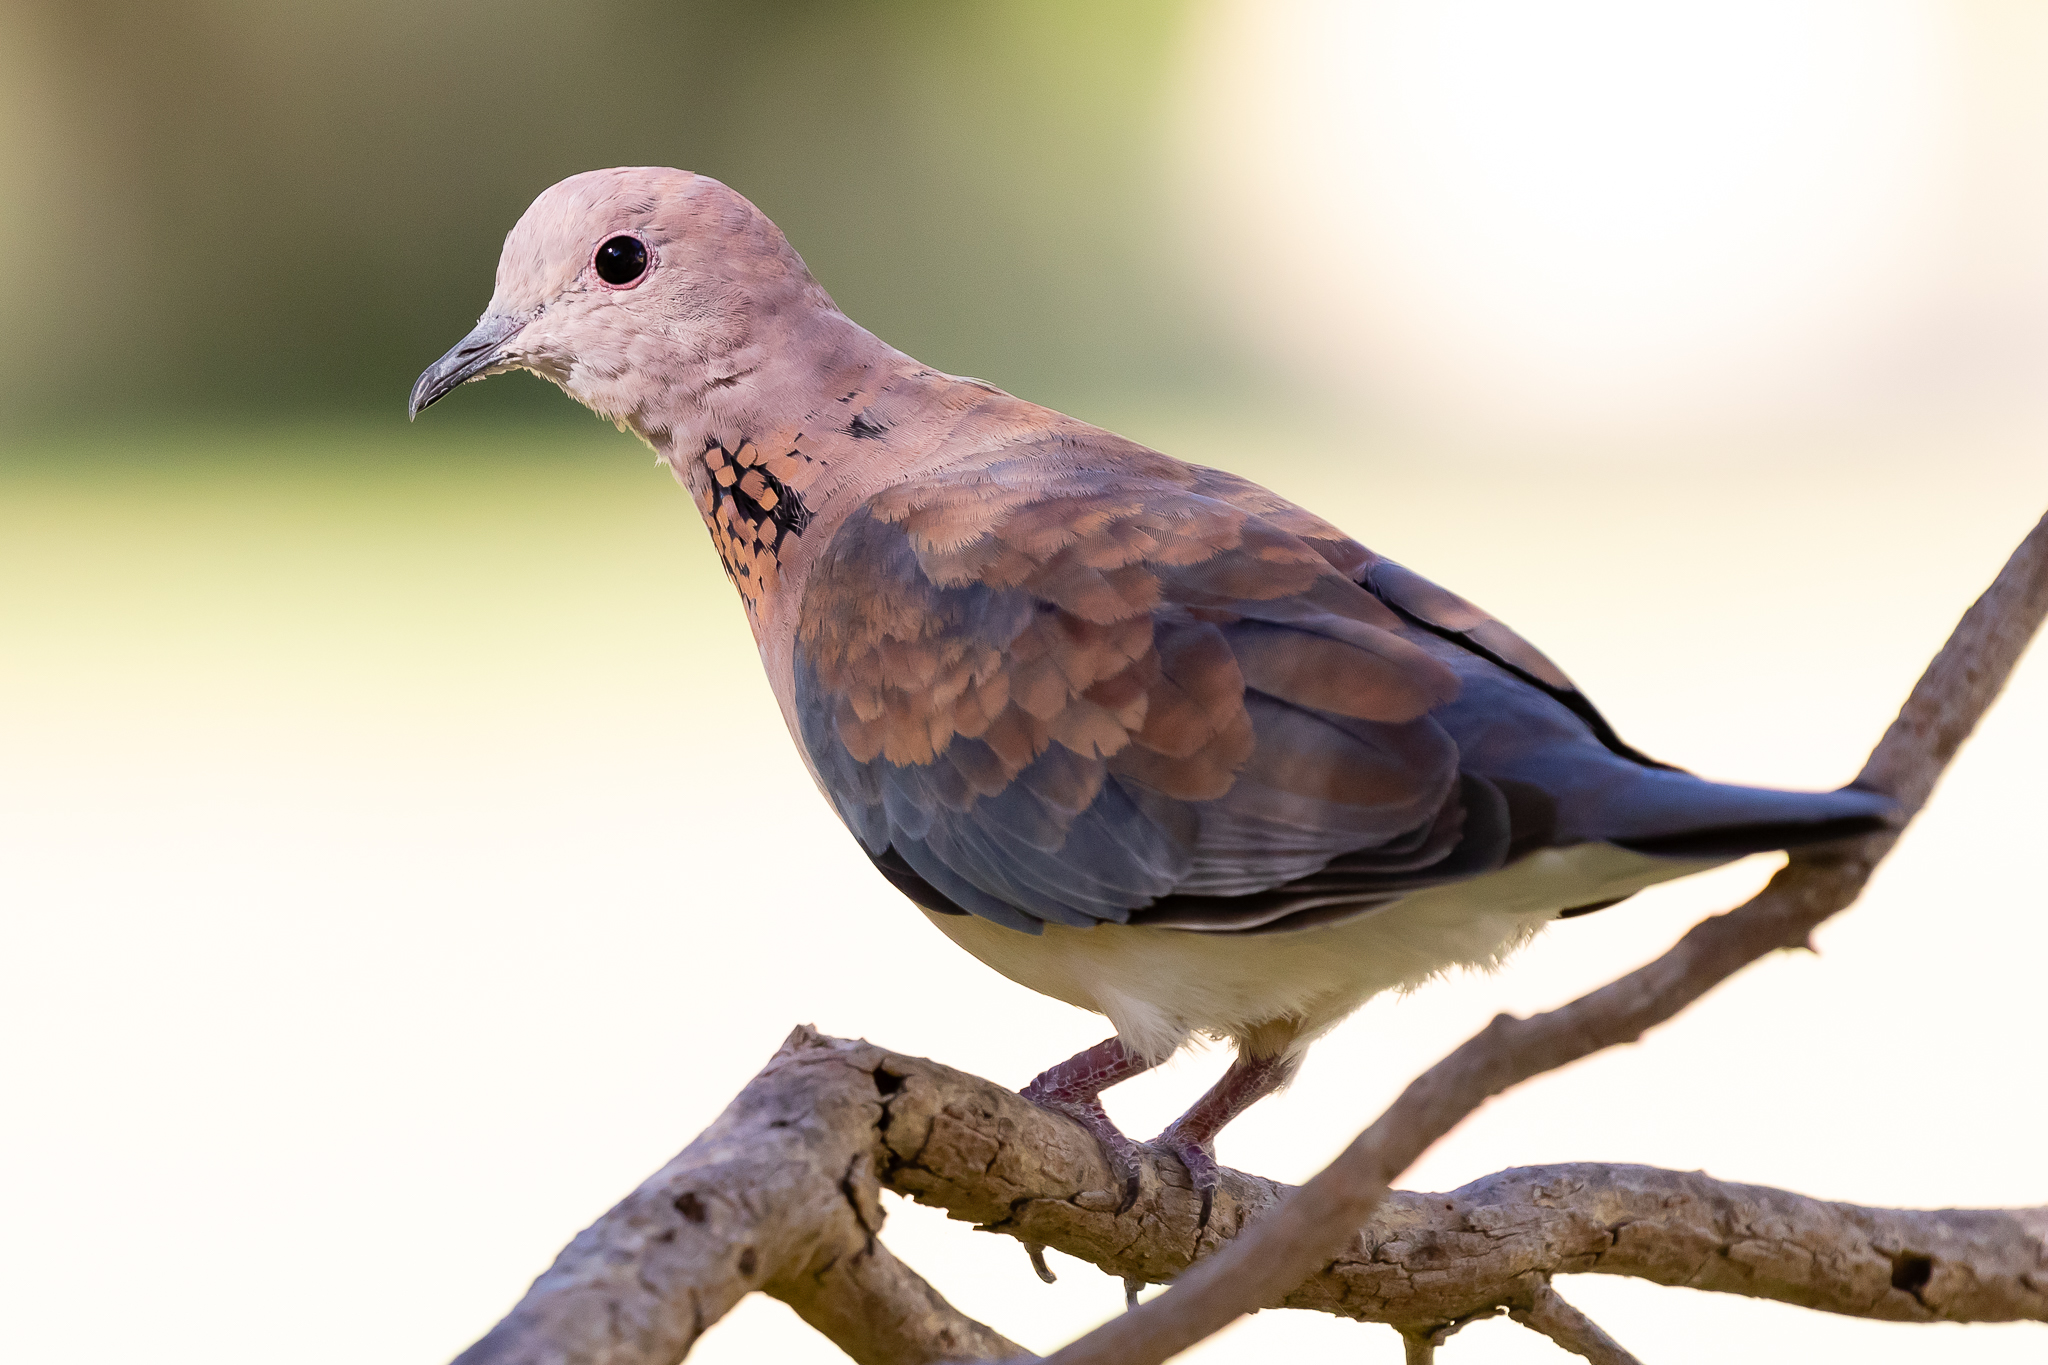 This Laughing Turtle-Dove (26 cm) was seen in Perth where it was introduced in the 1890's. They feed on grain, seeds and food scraps.